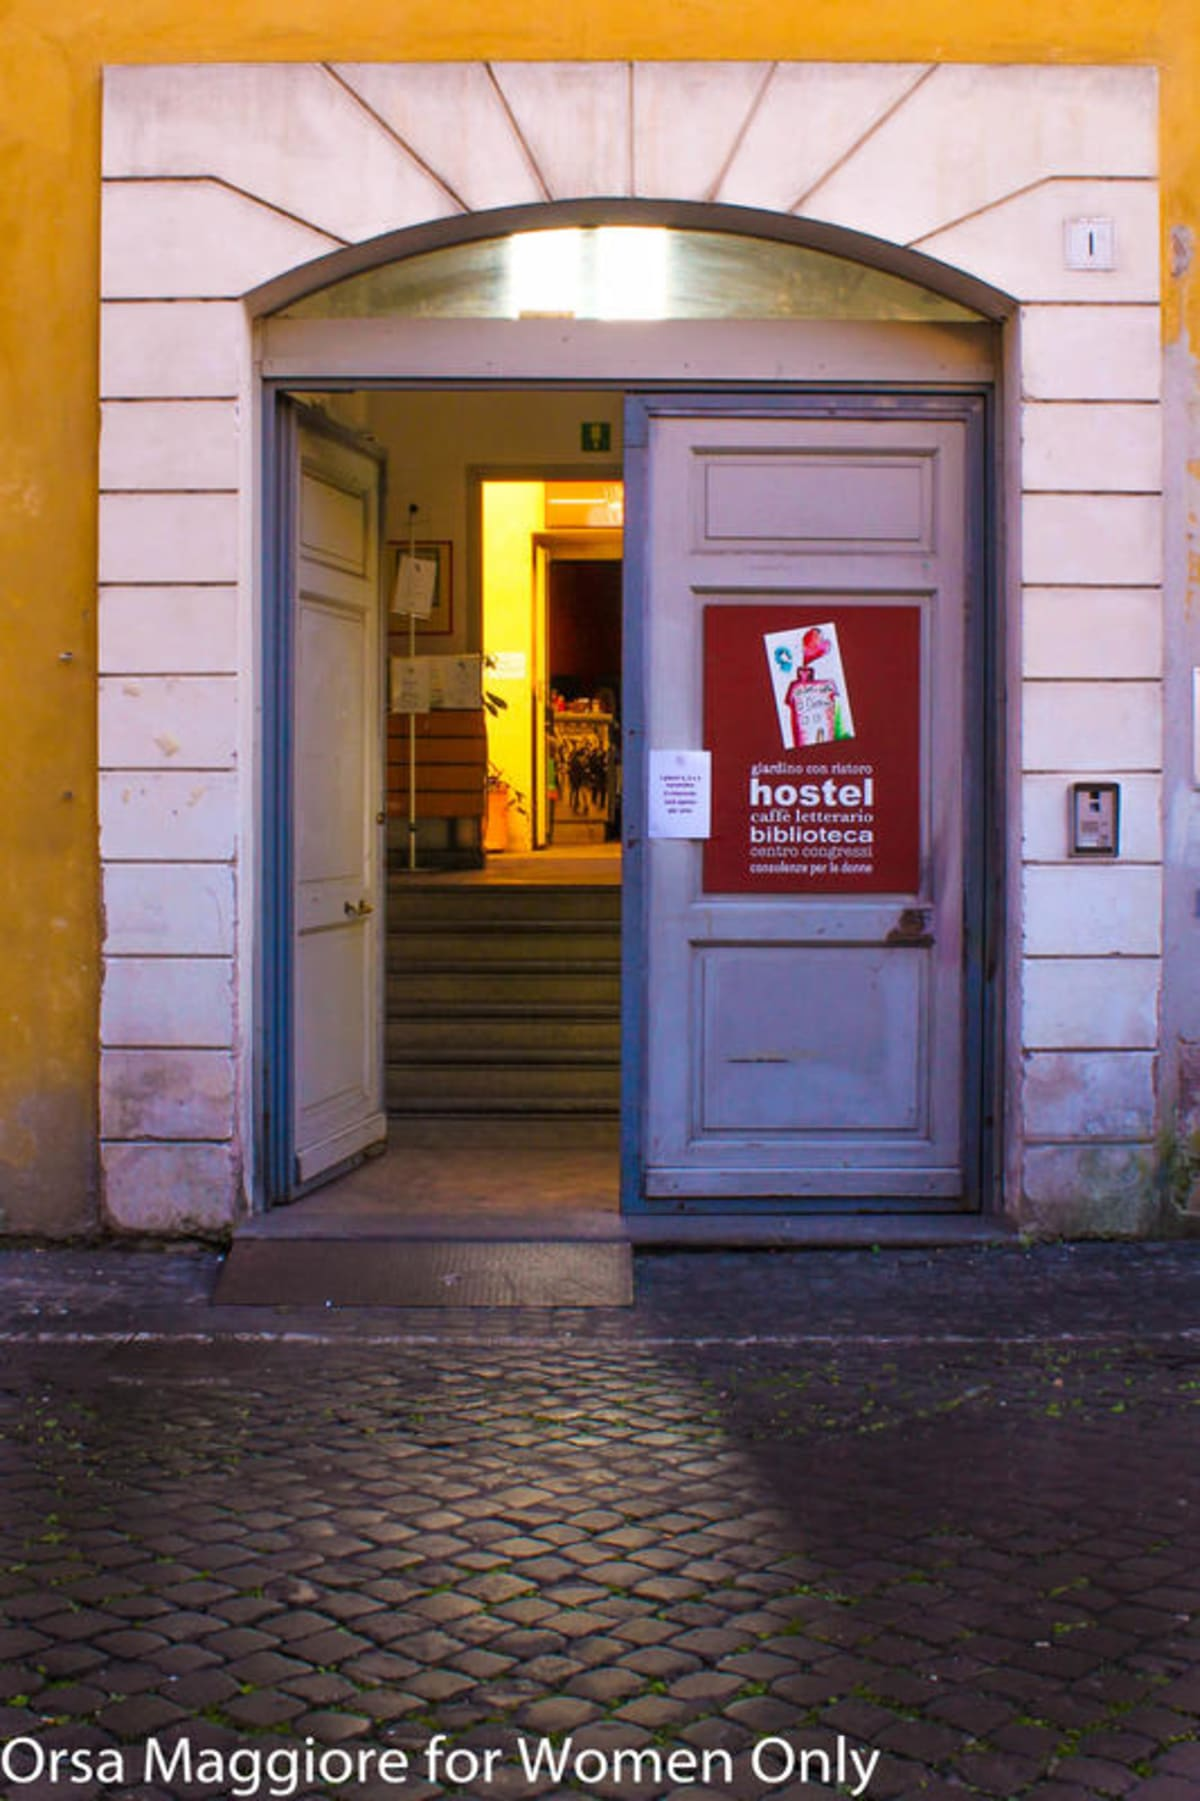 Orsa Maggiore for Women Only, Rome, Italy